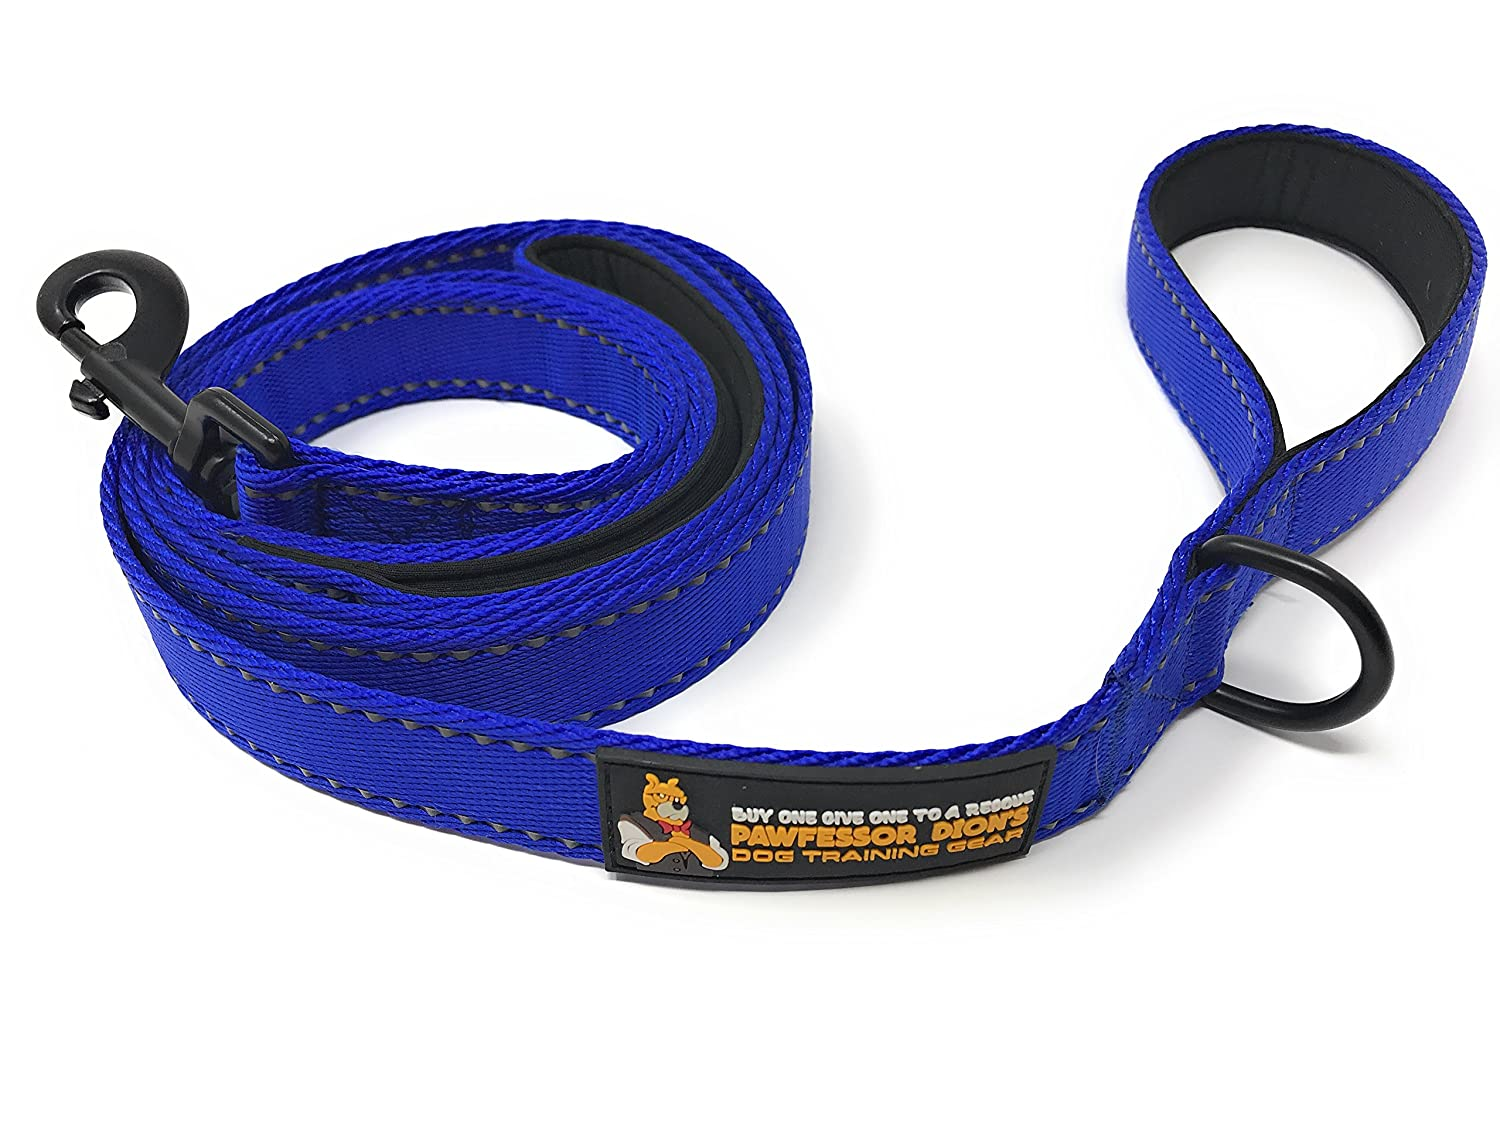 Pawfessor Dion's 6ft Reflective Double Handle Traffic Dog Leash - Buy One and We Donate One to a Dog Rescue (Black)